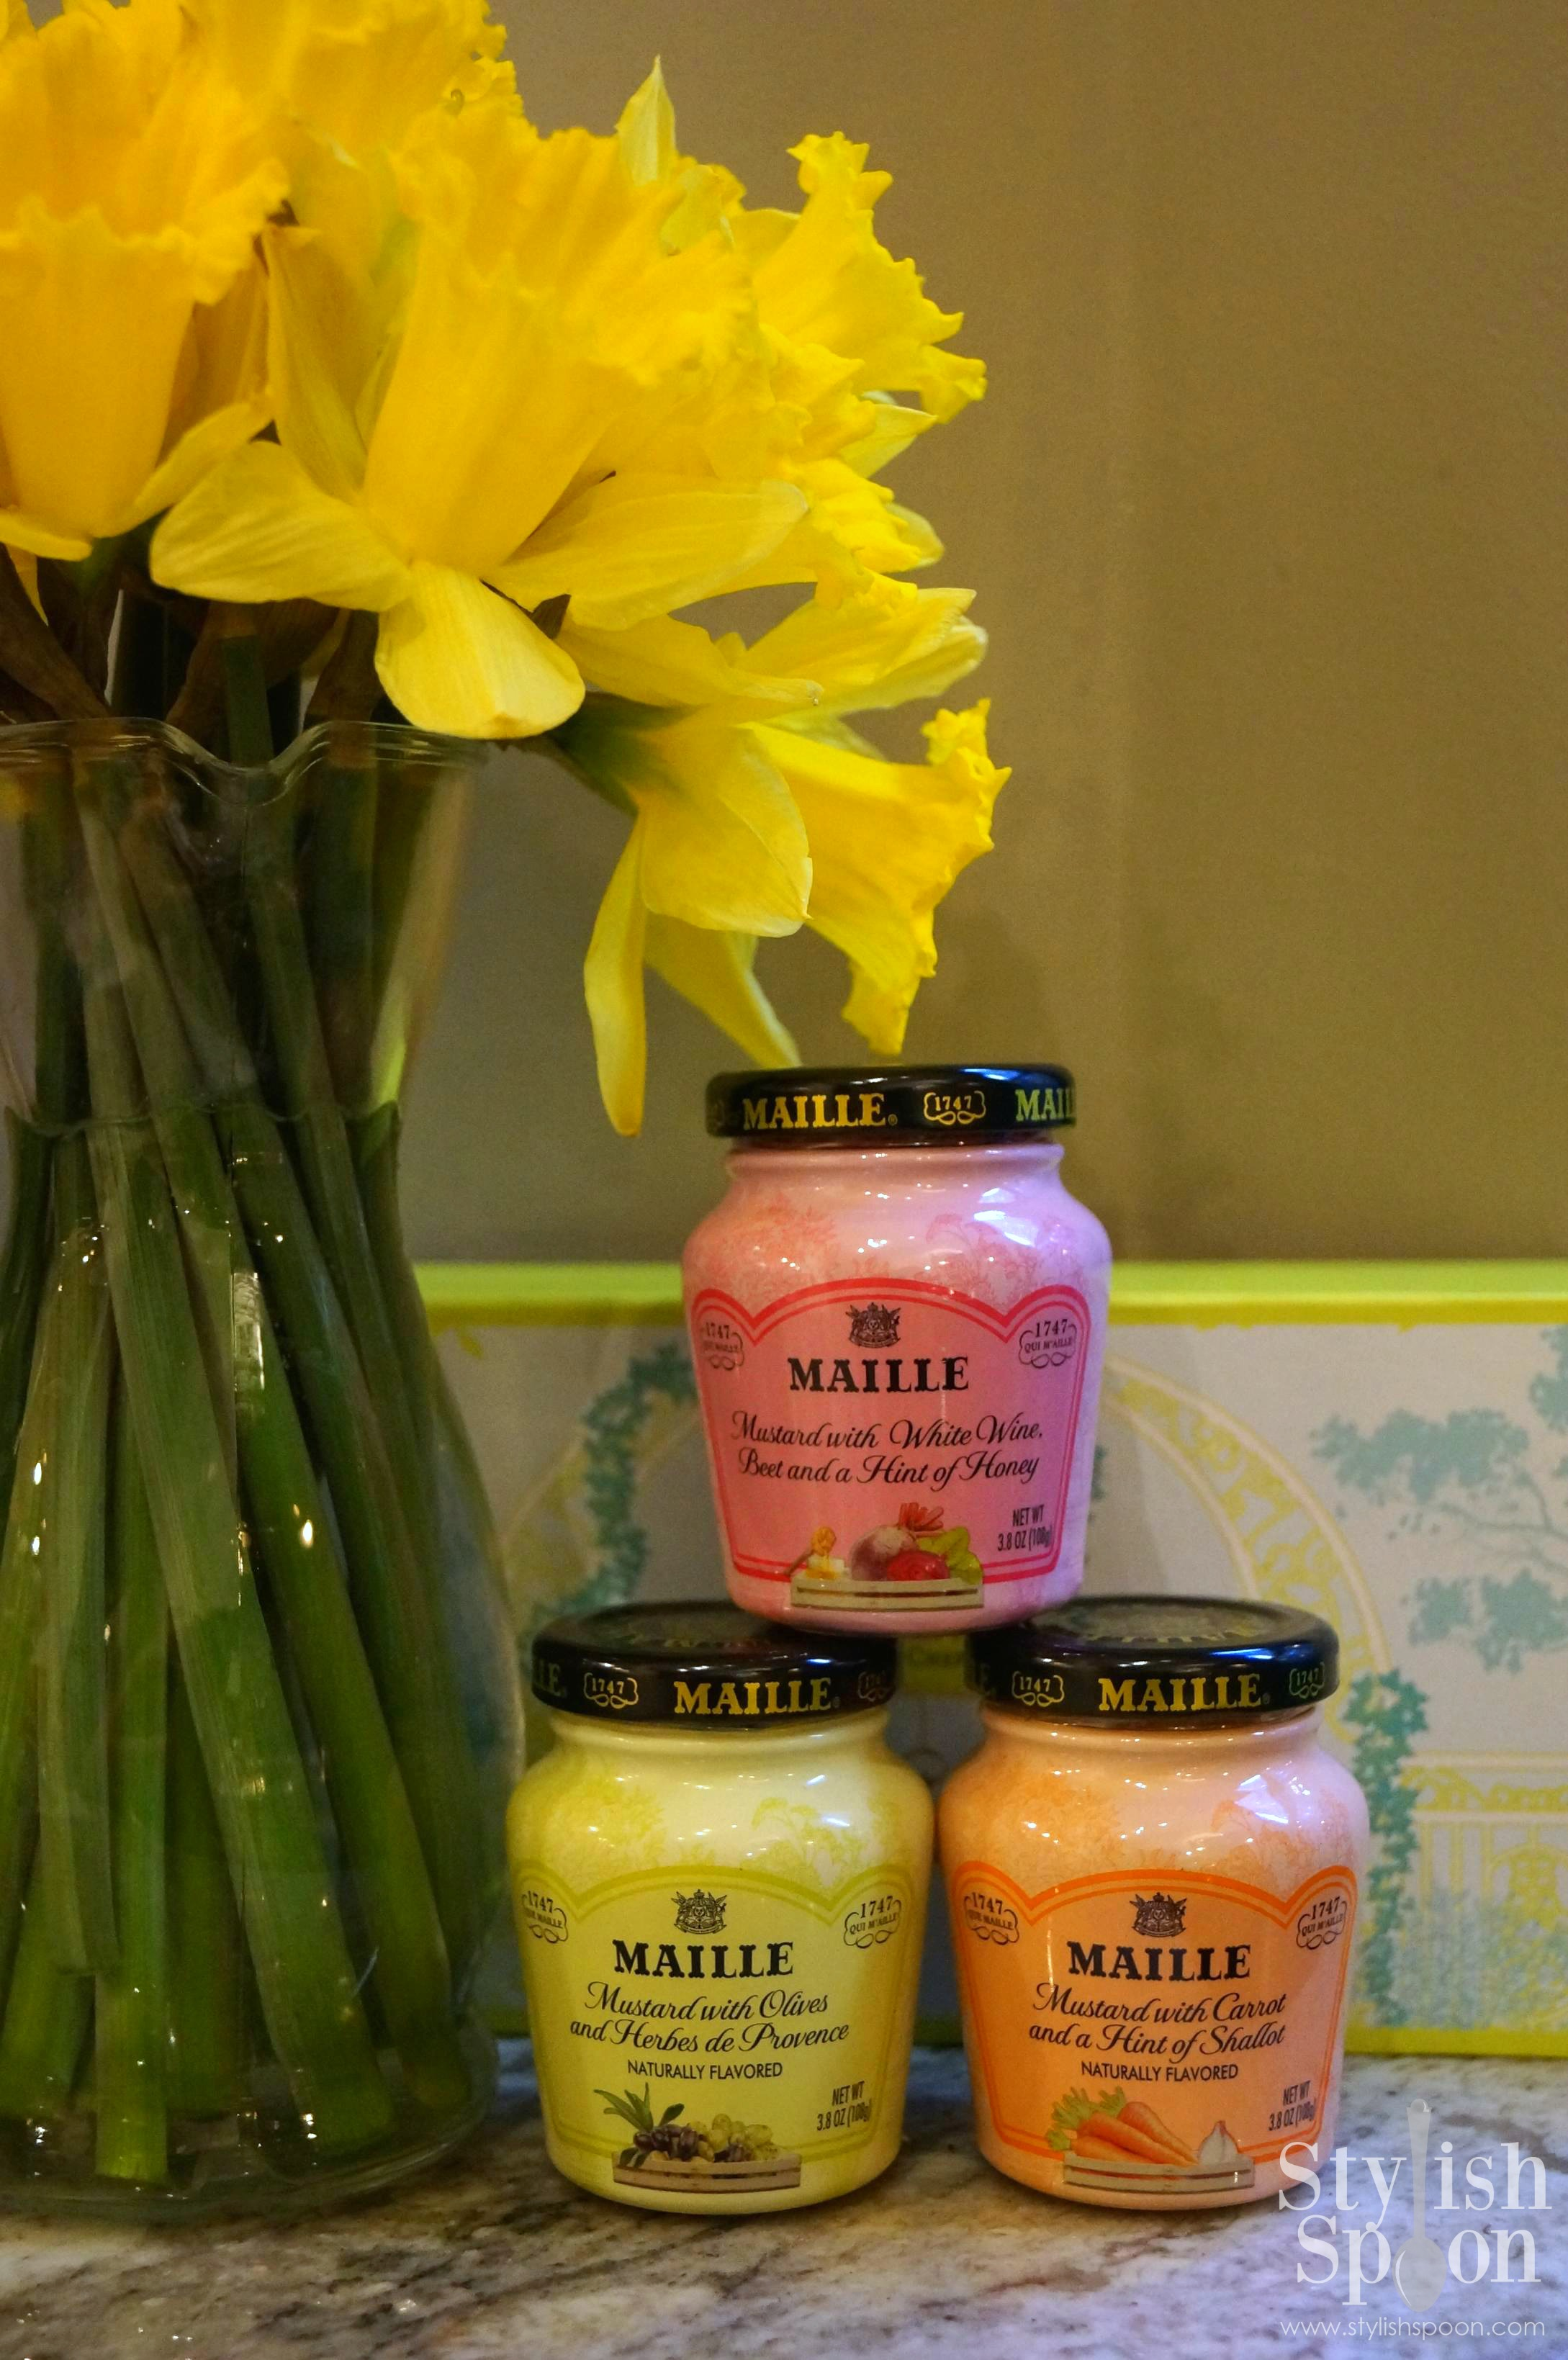 Maille Mustard gift Set Giveaway